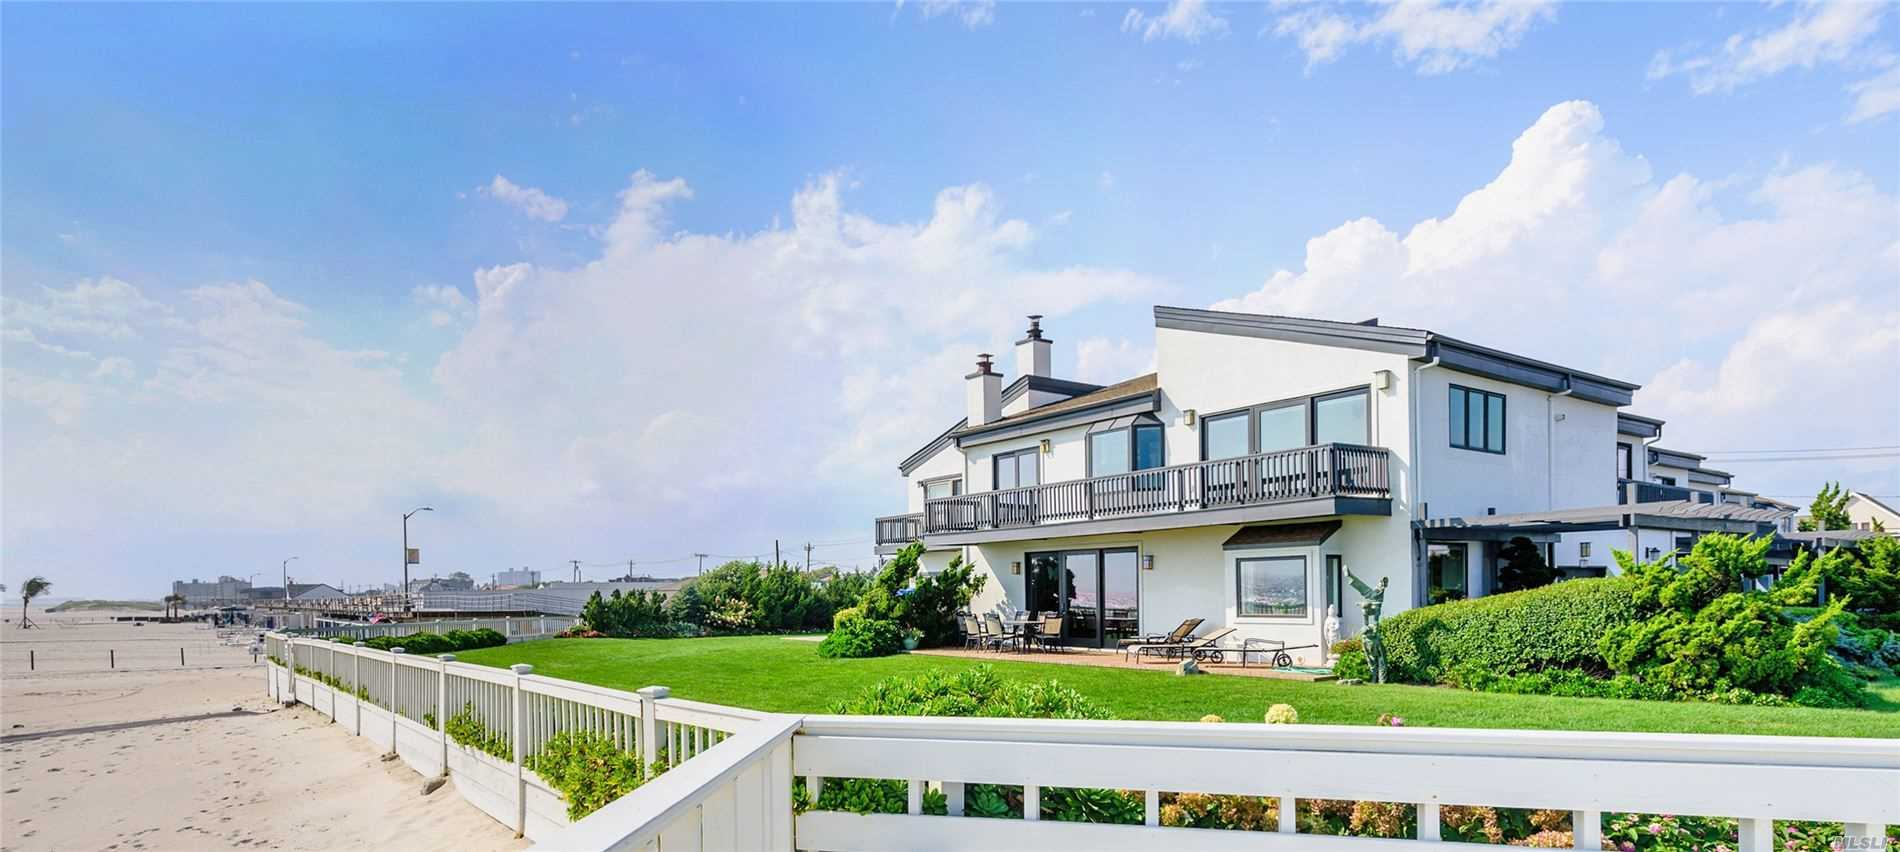 Atlantic Beach Beautiful Oceanfront 3 Bedroom 3 Bath Townhouse in Pebble Cove Private Community. Stunning VIews From All Rooms, Bright and Spacious Living Room, Master Suite. Heated In-ground Pool, Club House. 45 Minutes From Manhattan. Must See!